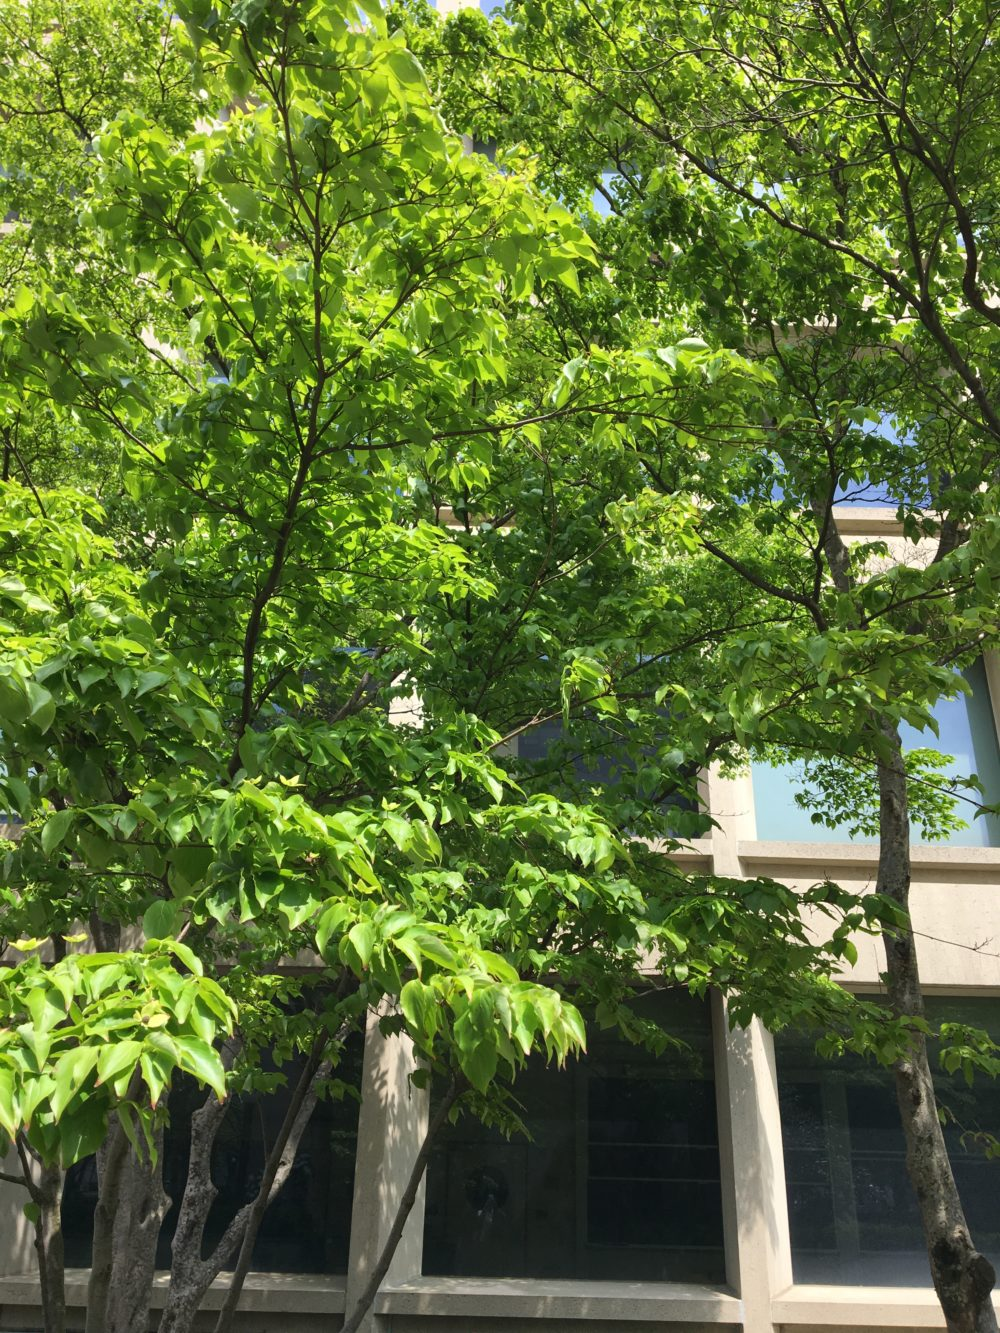 A very green, leafy tree outside Building 66. It is a sunny day and the blue sky is reflected in some of the building's windows.